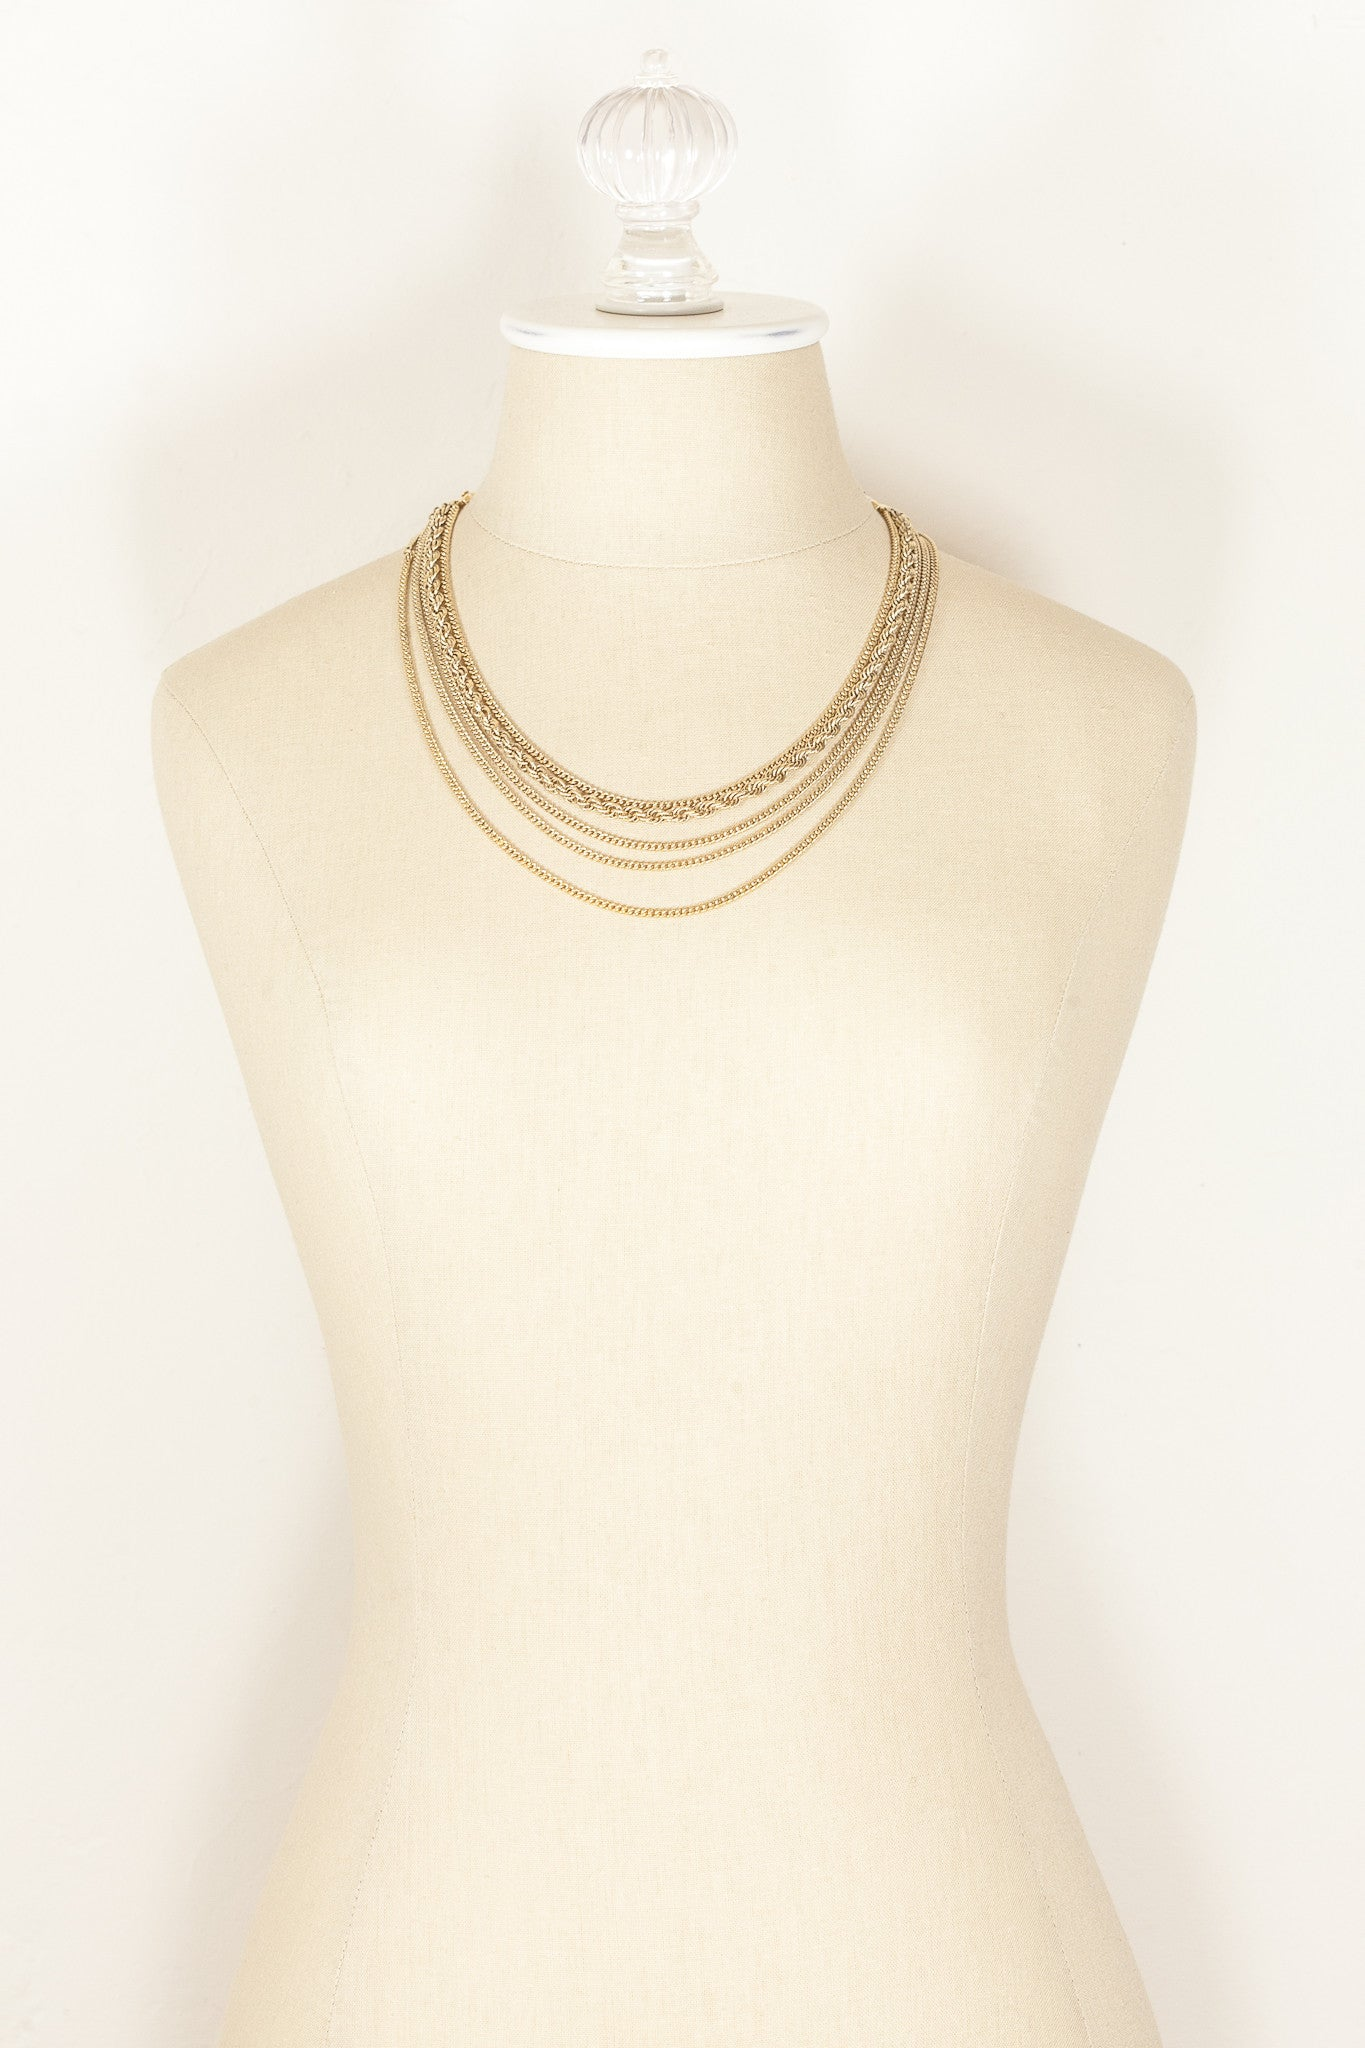 70's__Monet__Multi Chain Necklace